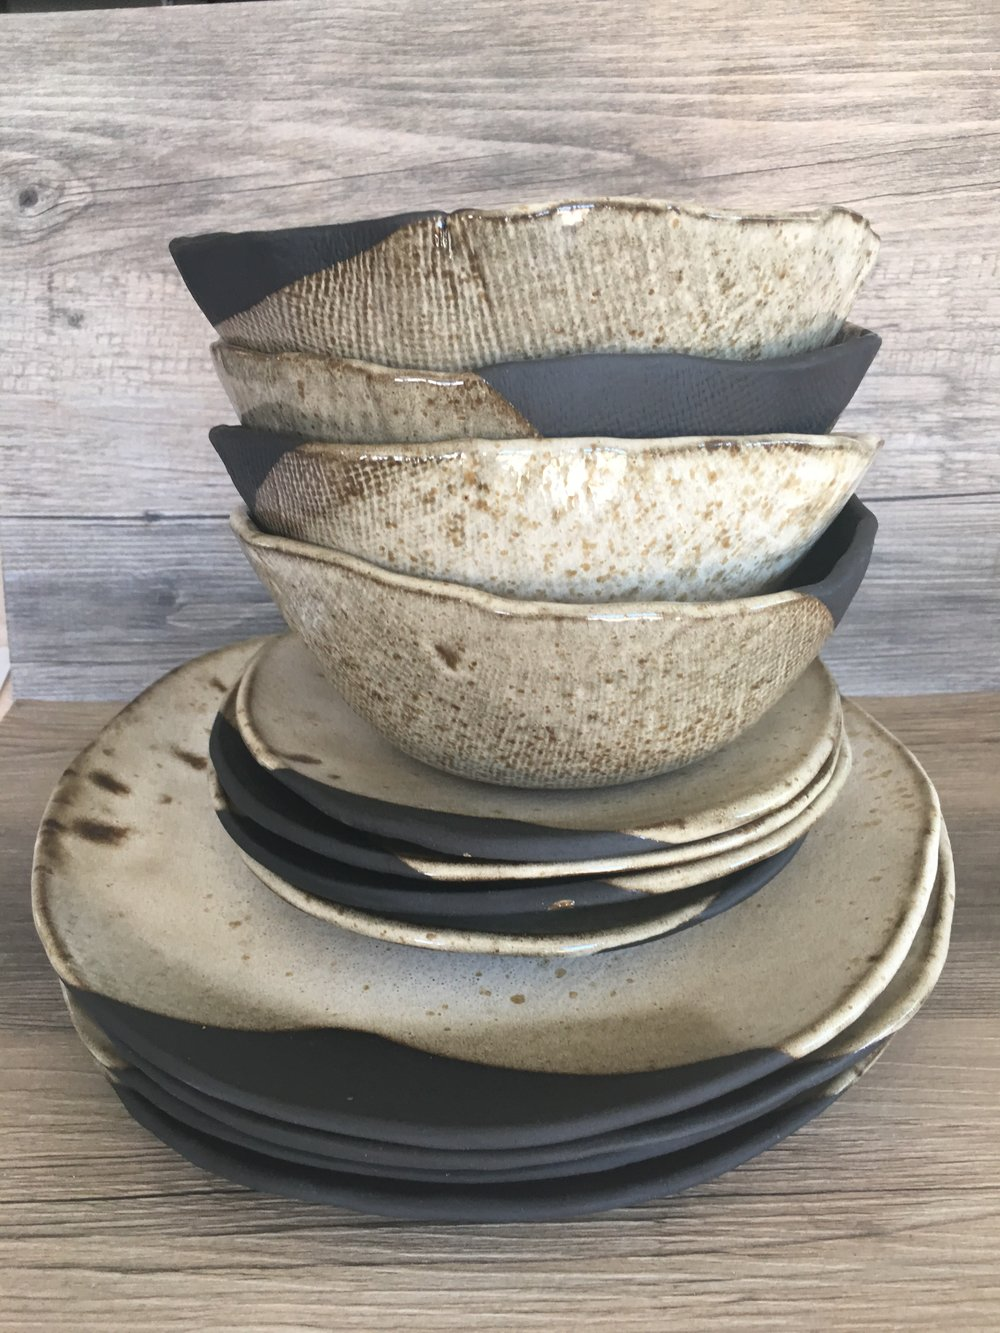 Ceramic Dinner Plates Dinnerware Set Modern And Chic Ceramic Dinner Plates    Set Of 4   Silky White Glaze On A Black Clay Body   Summer Cool And Clean  And ...